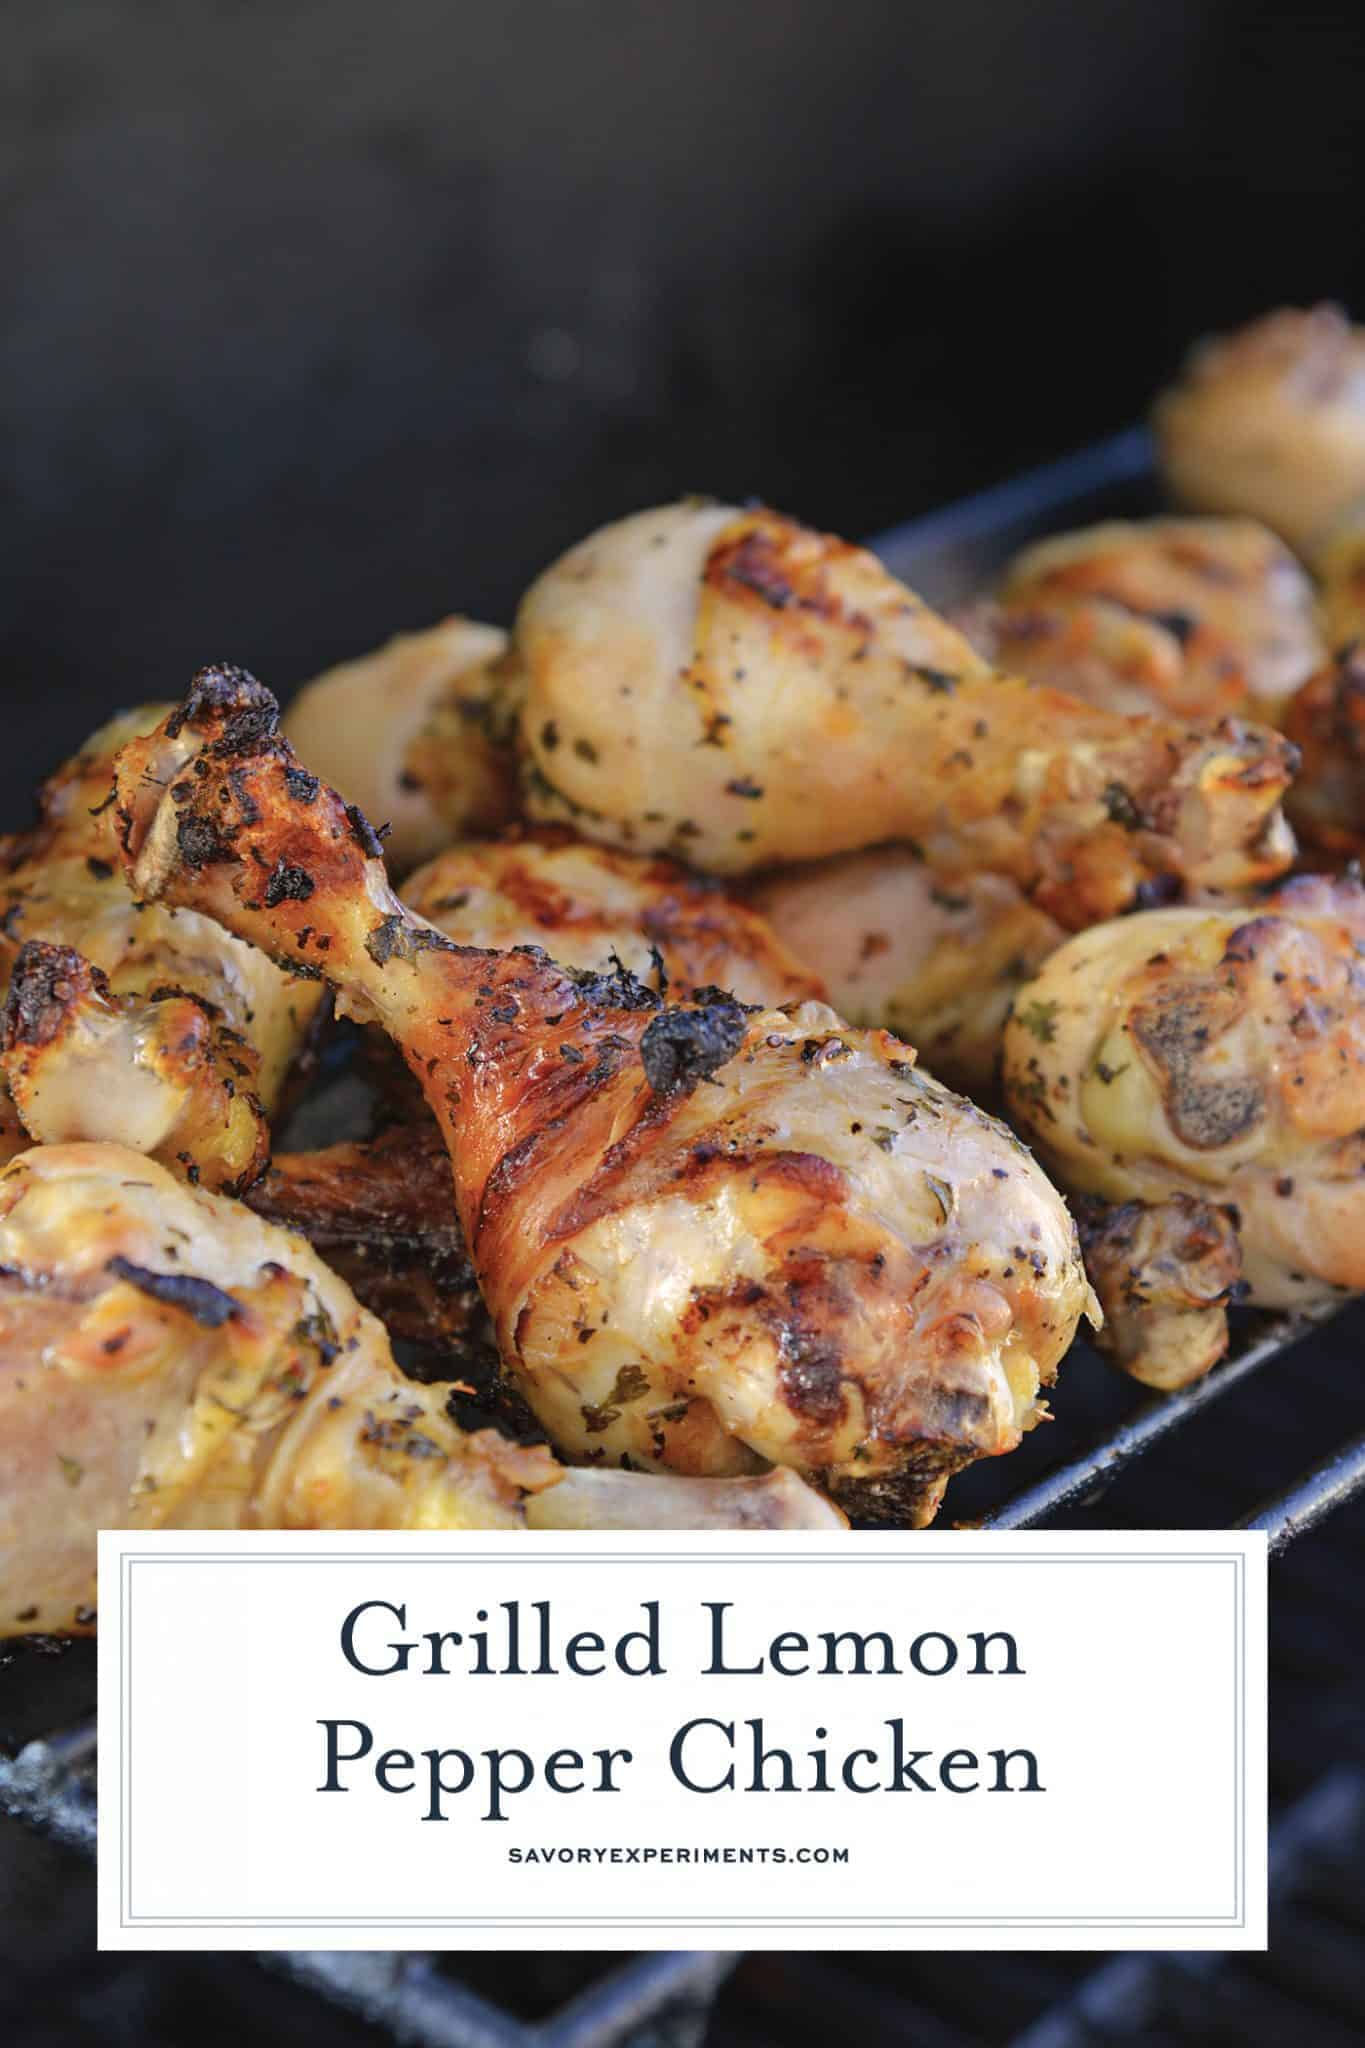 Grilled Lemon Pepper Chicken is made up of a simple marinade for foolproof chicken on the grill every time! This recipe is so simple and turns out the great! #lemonchicken #lemonpepperchicken www.savoryexperiments.com